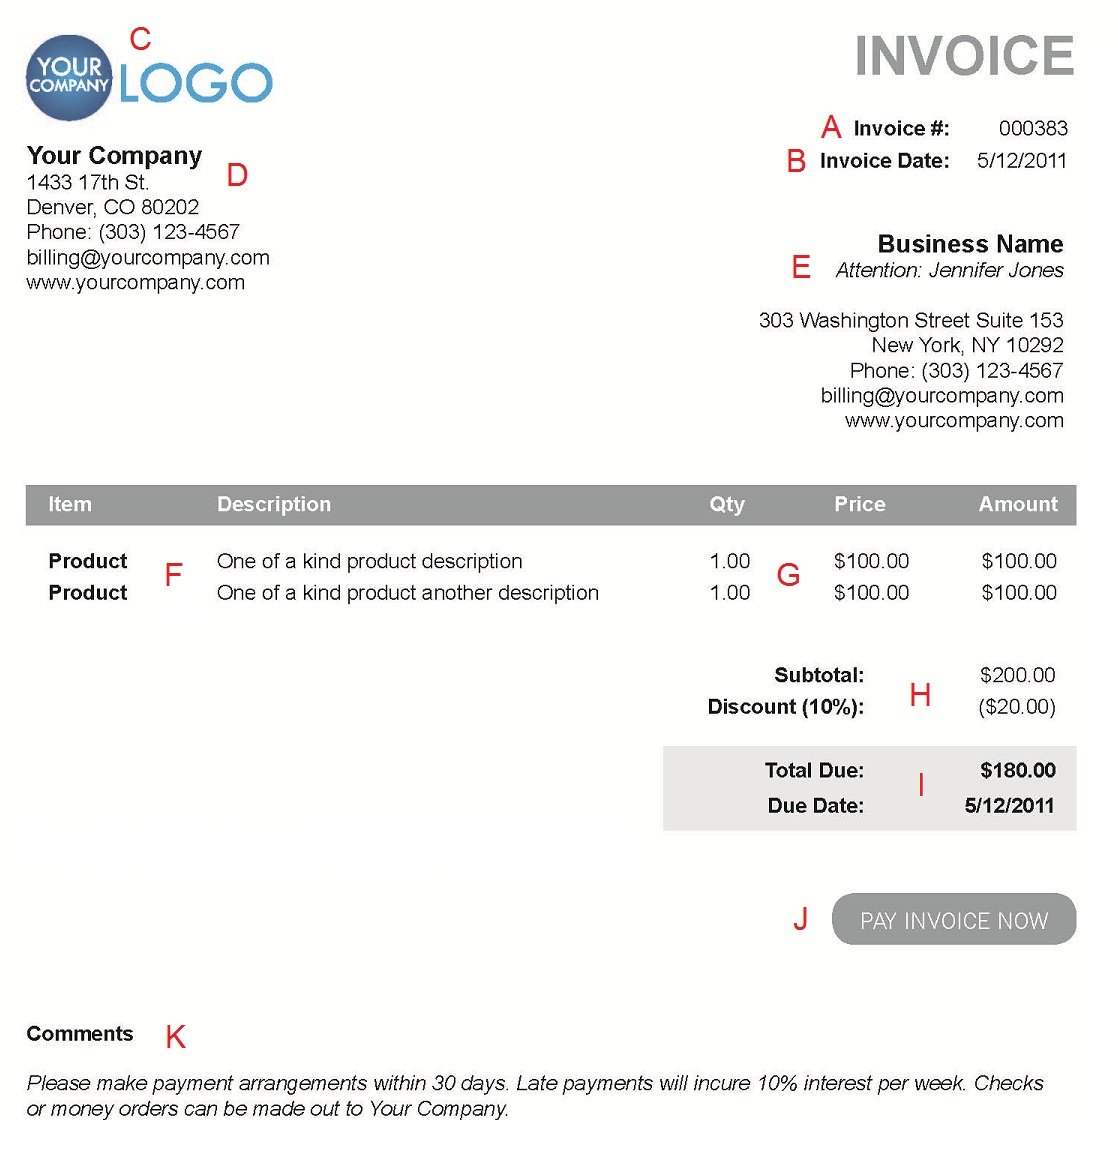 Aninsaneportraitus  Terrific The  Different Sections Of An Electronic Payment Invoice With Excellent A  With Delightful Template For Receipt Of Money Also Template For Sales Receipt In Addition Bond Receipt And Treasury Investment Growth Receipt As Well As Please Kindly Acknowledge Receipt Of This Email Additionally Receipt For Crepes From Paysimplecom With Aninsaneportraitus  Excellent The  Different Sections Of An Electronic Payment Invoice With Delightful A  And Terrific Template For Receipt Of Money Also Template For Sales Receipt In Addition Bond Receipt From Paysimplecom